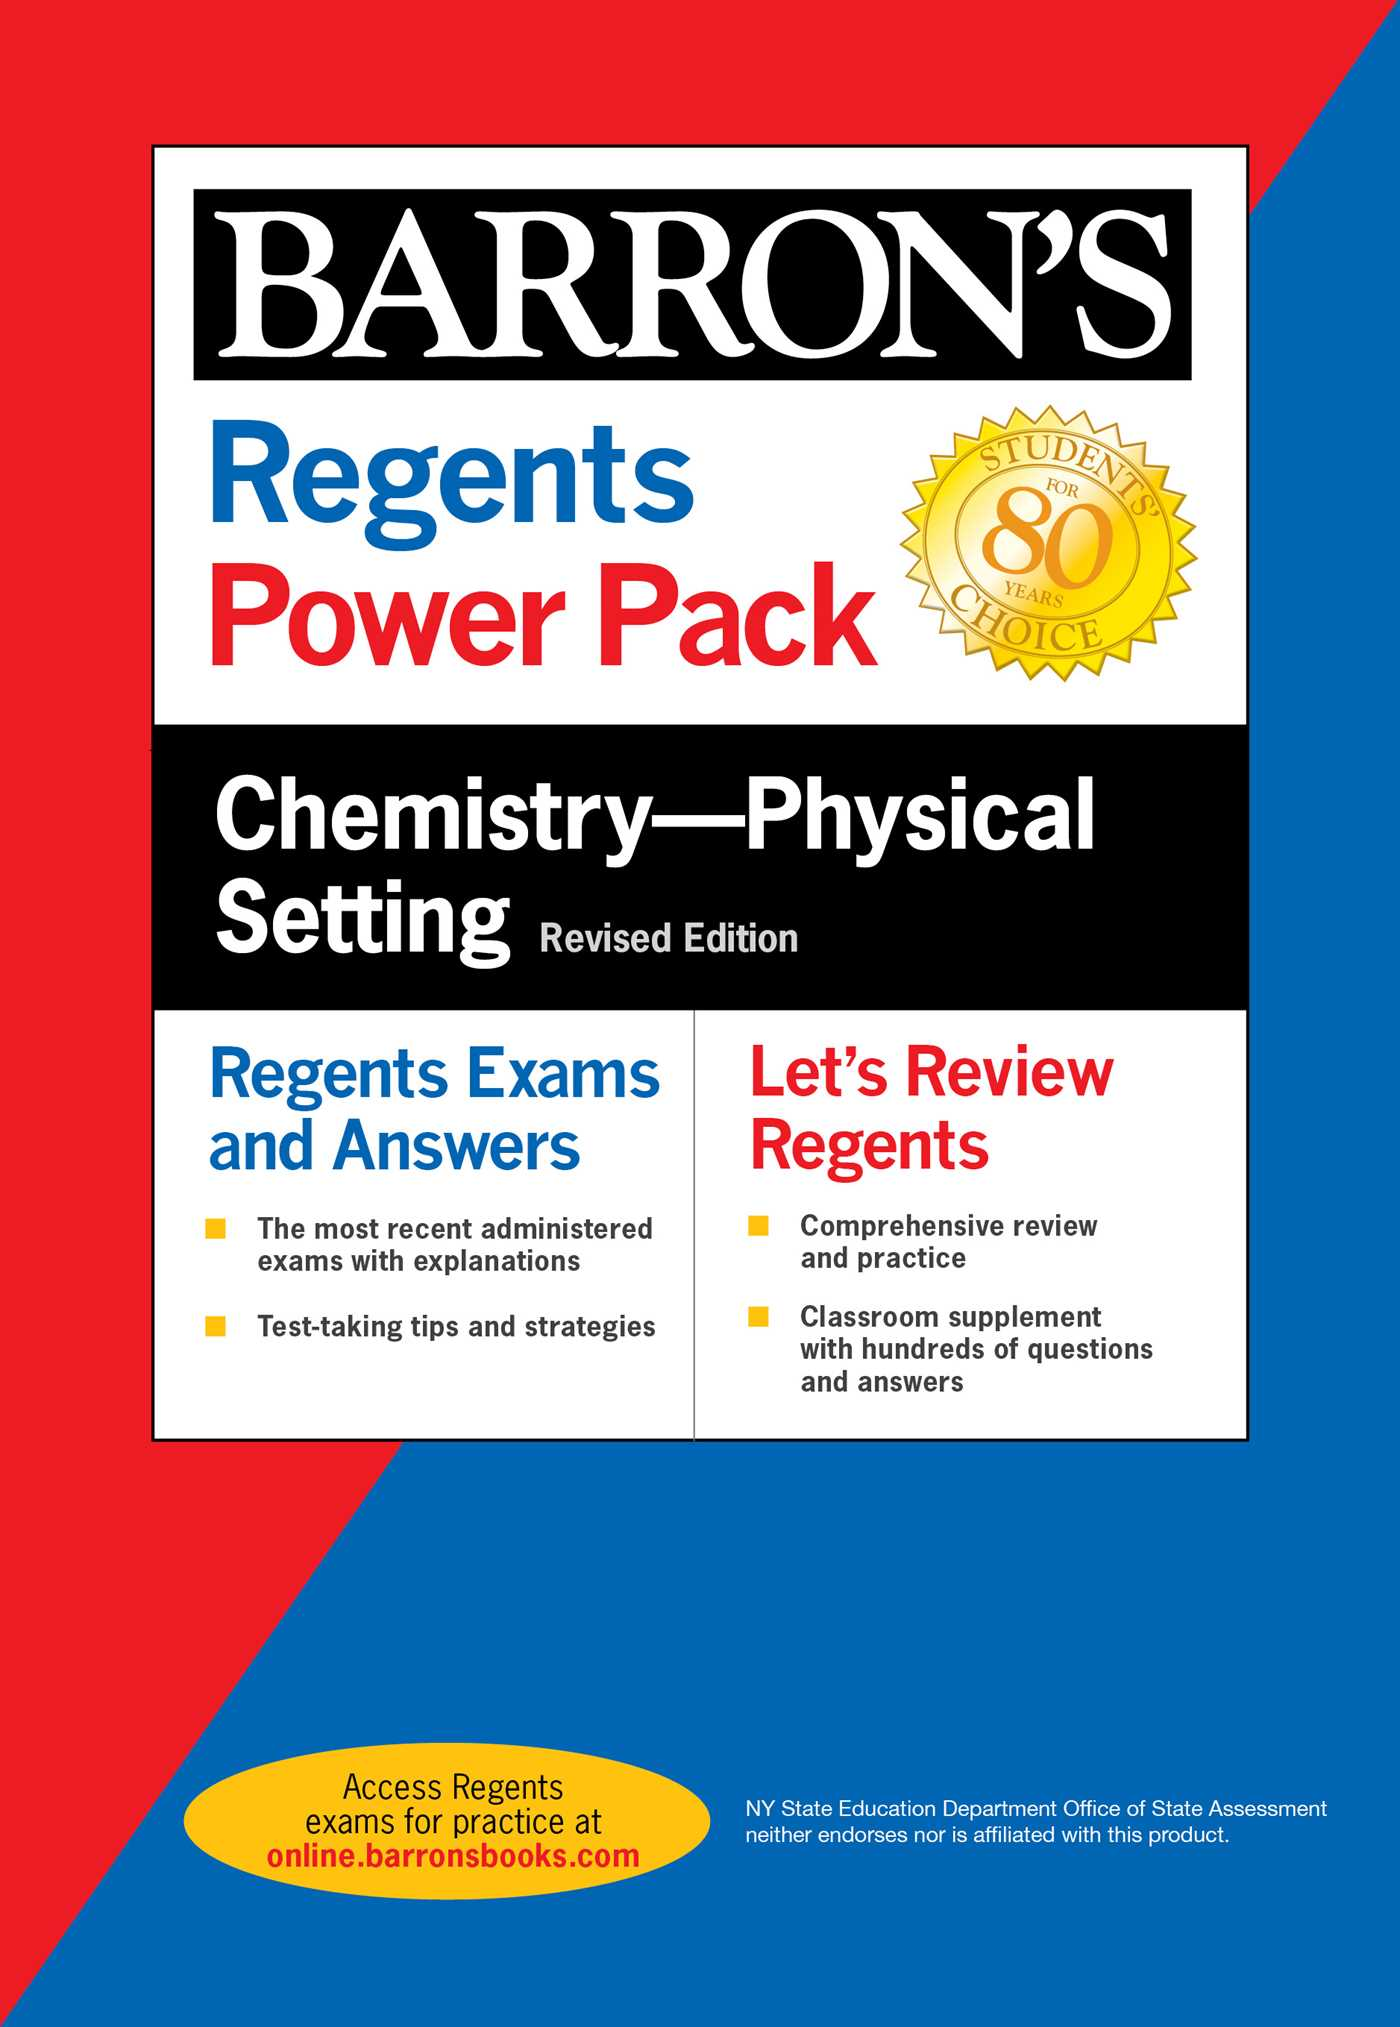 Regents Chemistry--Physical Setting Power Pack Revised Edition